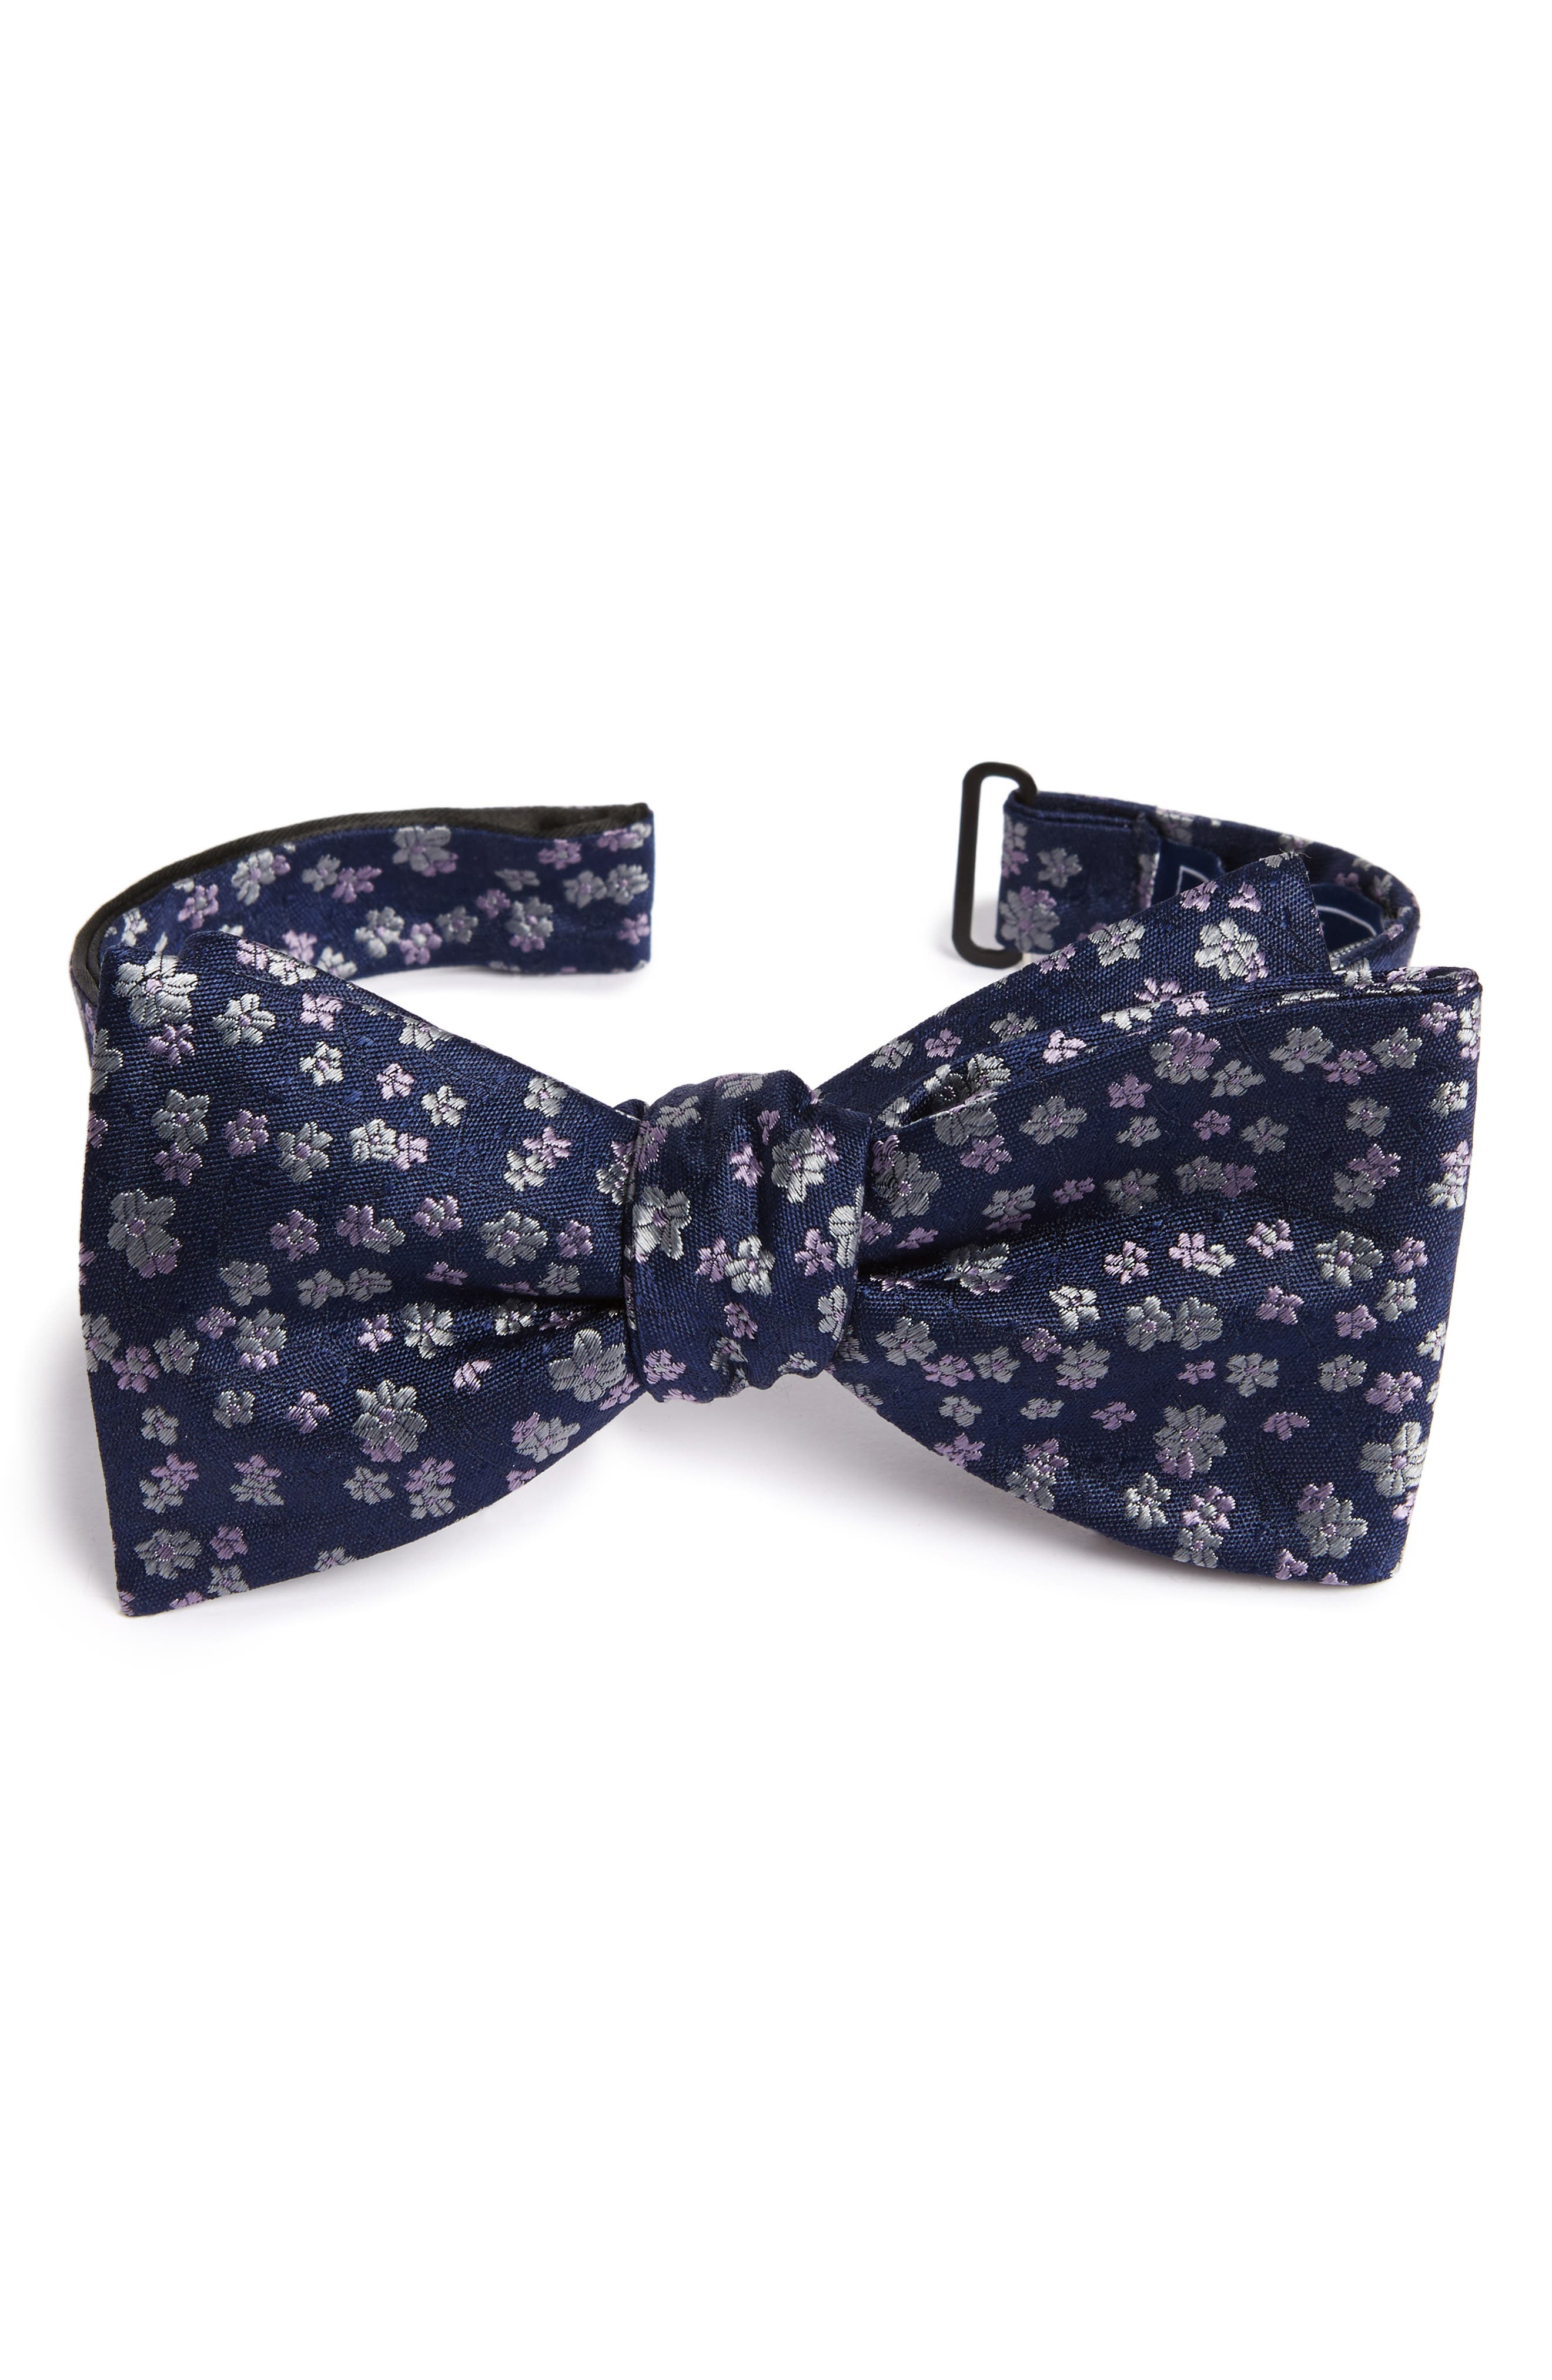 Alternate Image 1 Selected - The Tie Bar Free Fall Floral Silk Bow Tie